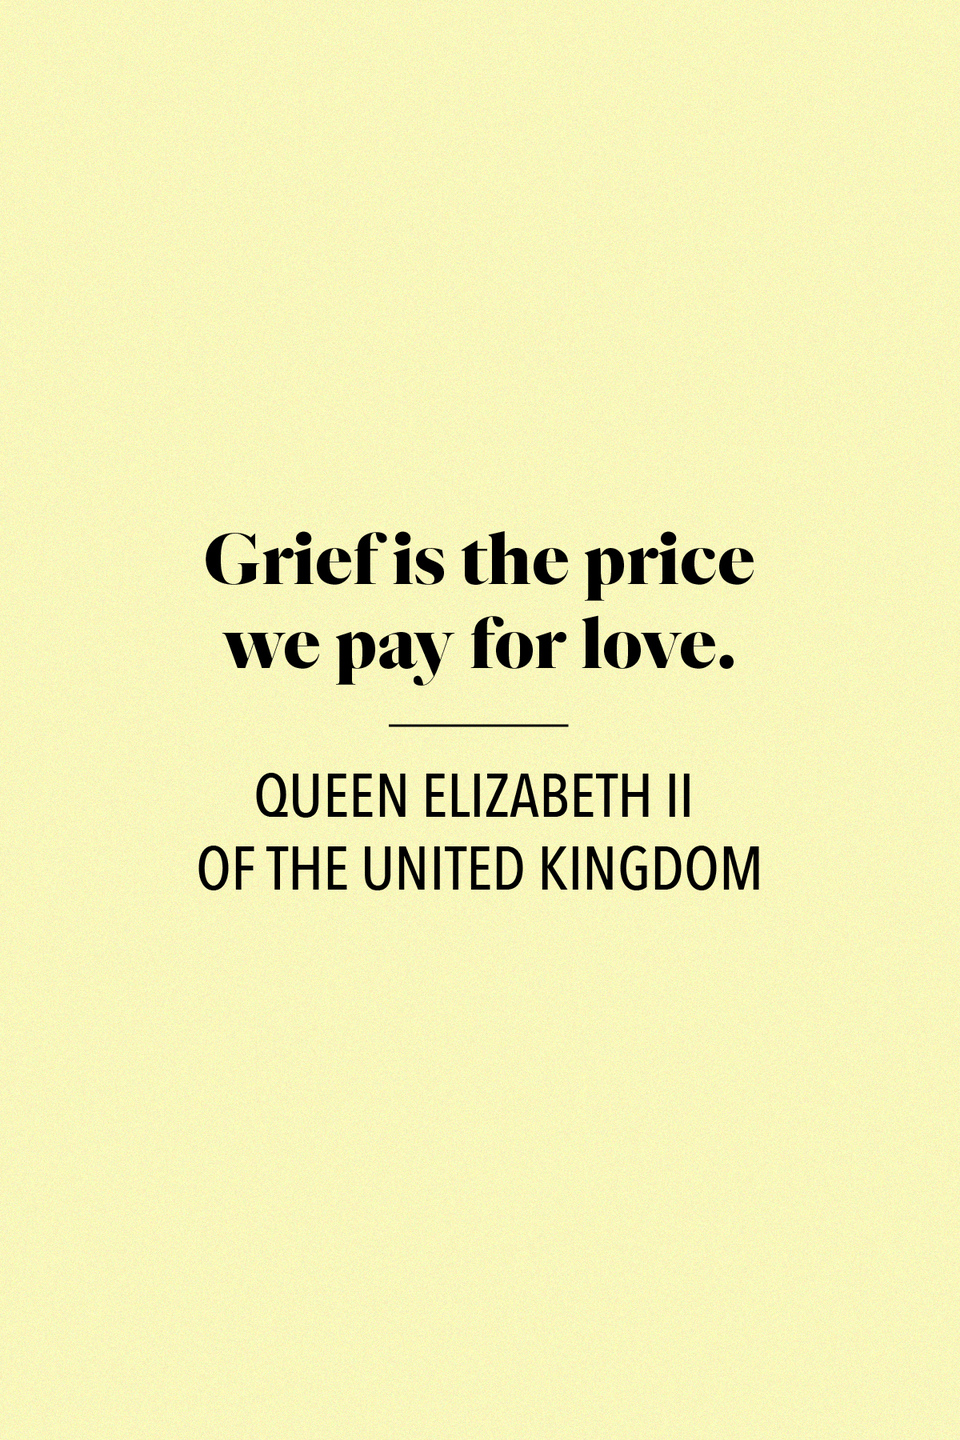 "<p>""Grief is the price we pay for love,"" Queen Elizabeth II <a href=""https://www.telegraph.co.uk/news/worldnews/northamerica/usa/1341155/Grief-is-price-of-love-says-the-Queen.html"" rel=""nofollow noopener"" target=""_blank"" data-ylk=""slk:said in a message"" class=""link rapid-noclick-resp"">said in a message</a>, read by the British ambassador to Washington, shortly after the September 11 terrorist attack. </p>"